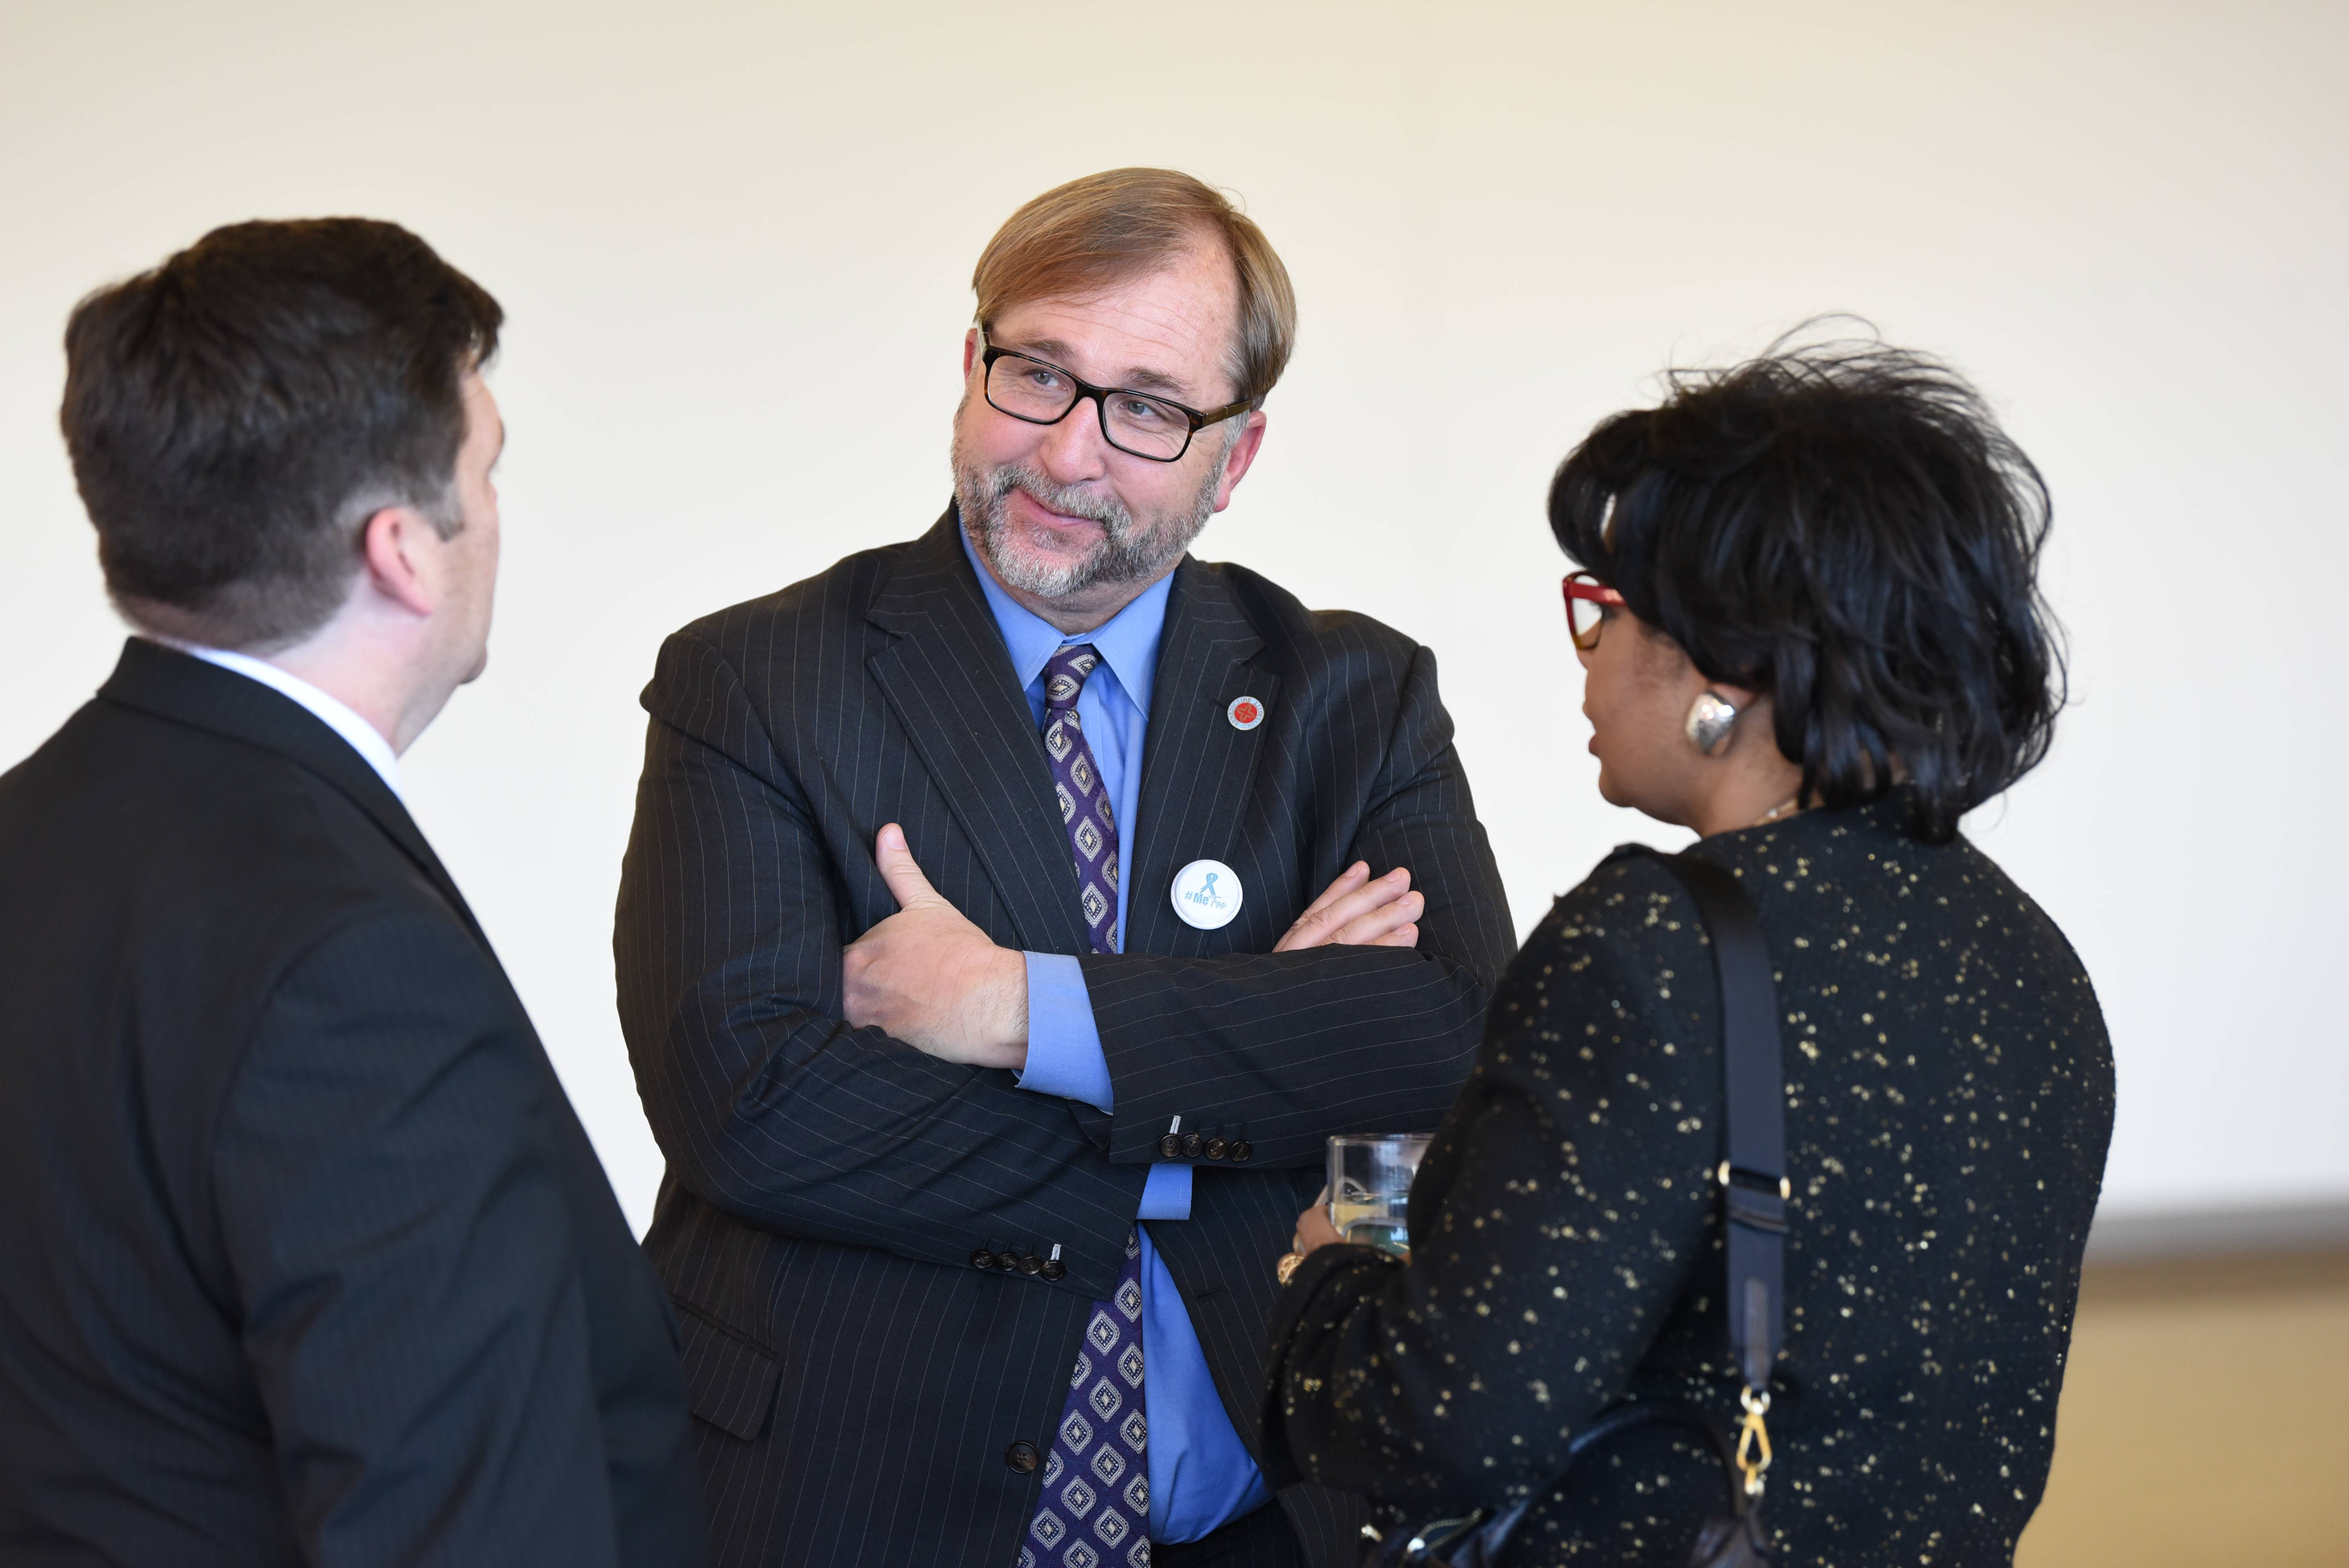 Jeff Knox/jknox@dailyherald.comDr. Michael Brophy, center, speaking to political CNN political contributor April Ryan, right, and Dr. Phillip Hardy during a speech by Ryan at Benedictine University in Lisle in 2017. Brophy is reportedly out as president of Benedictine University.